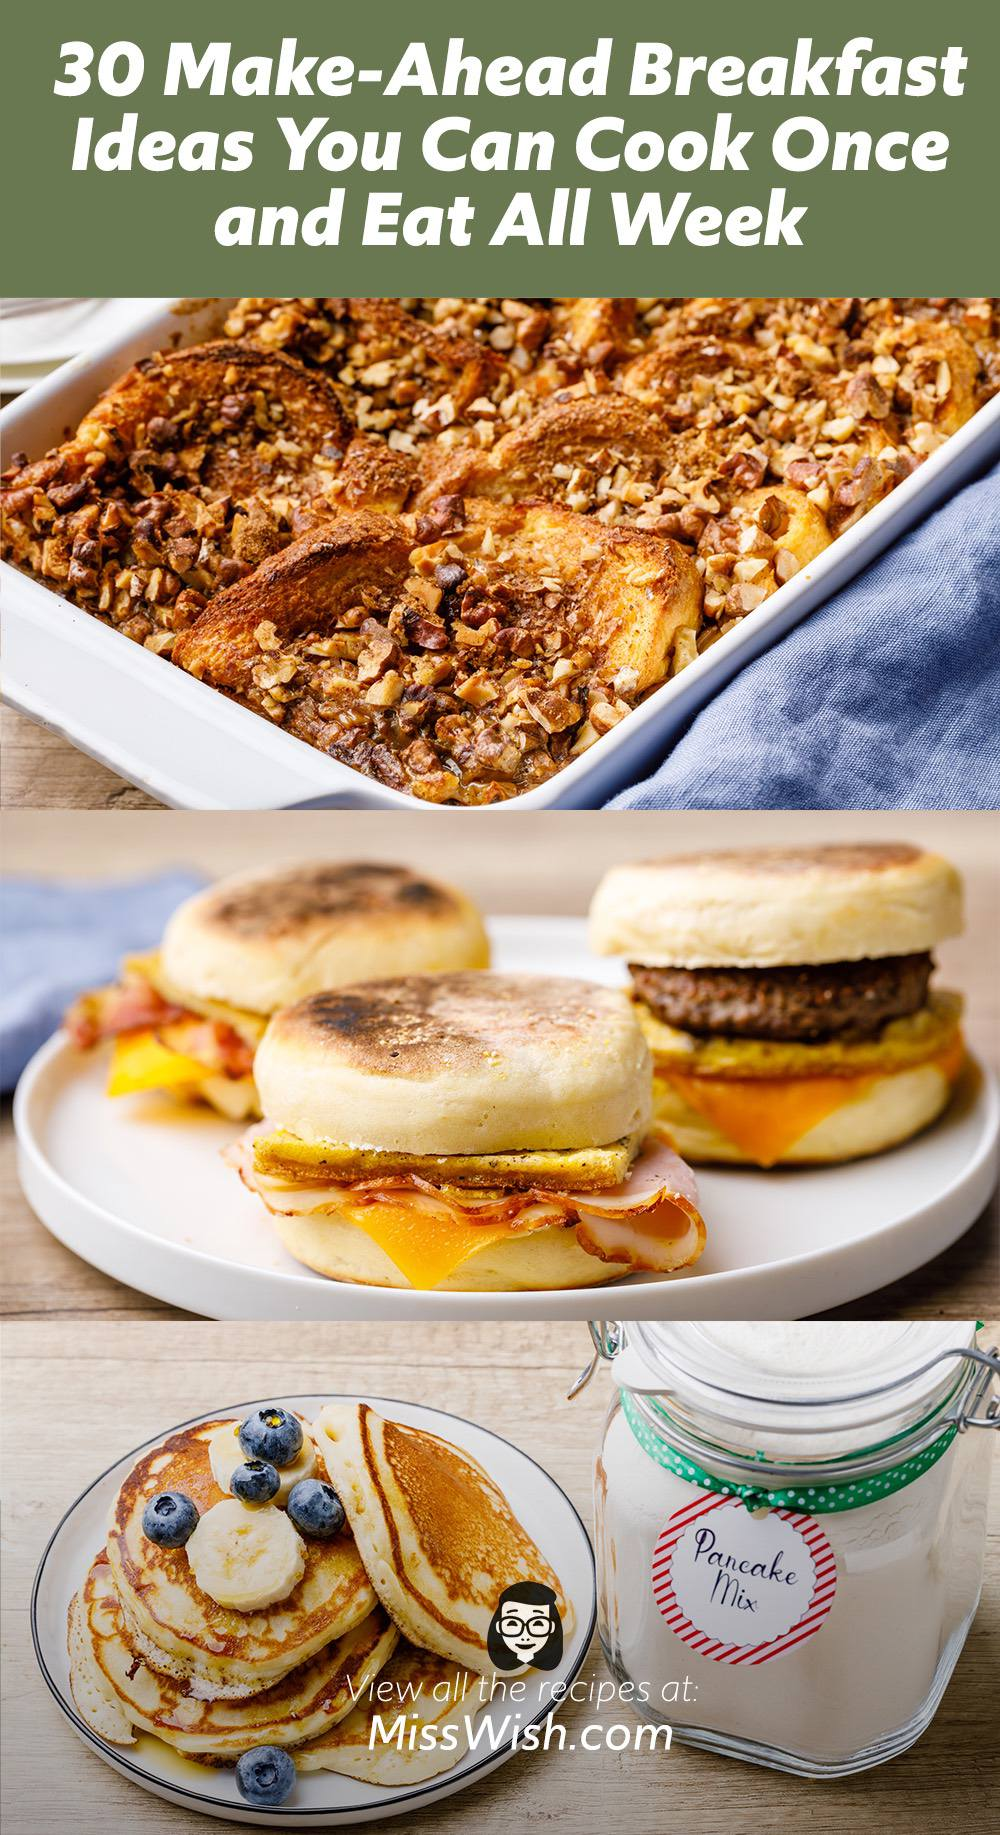 30 Make-Ahead Breakfast Ideas You Can Cook Once and Eat All Week